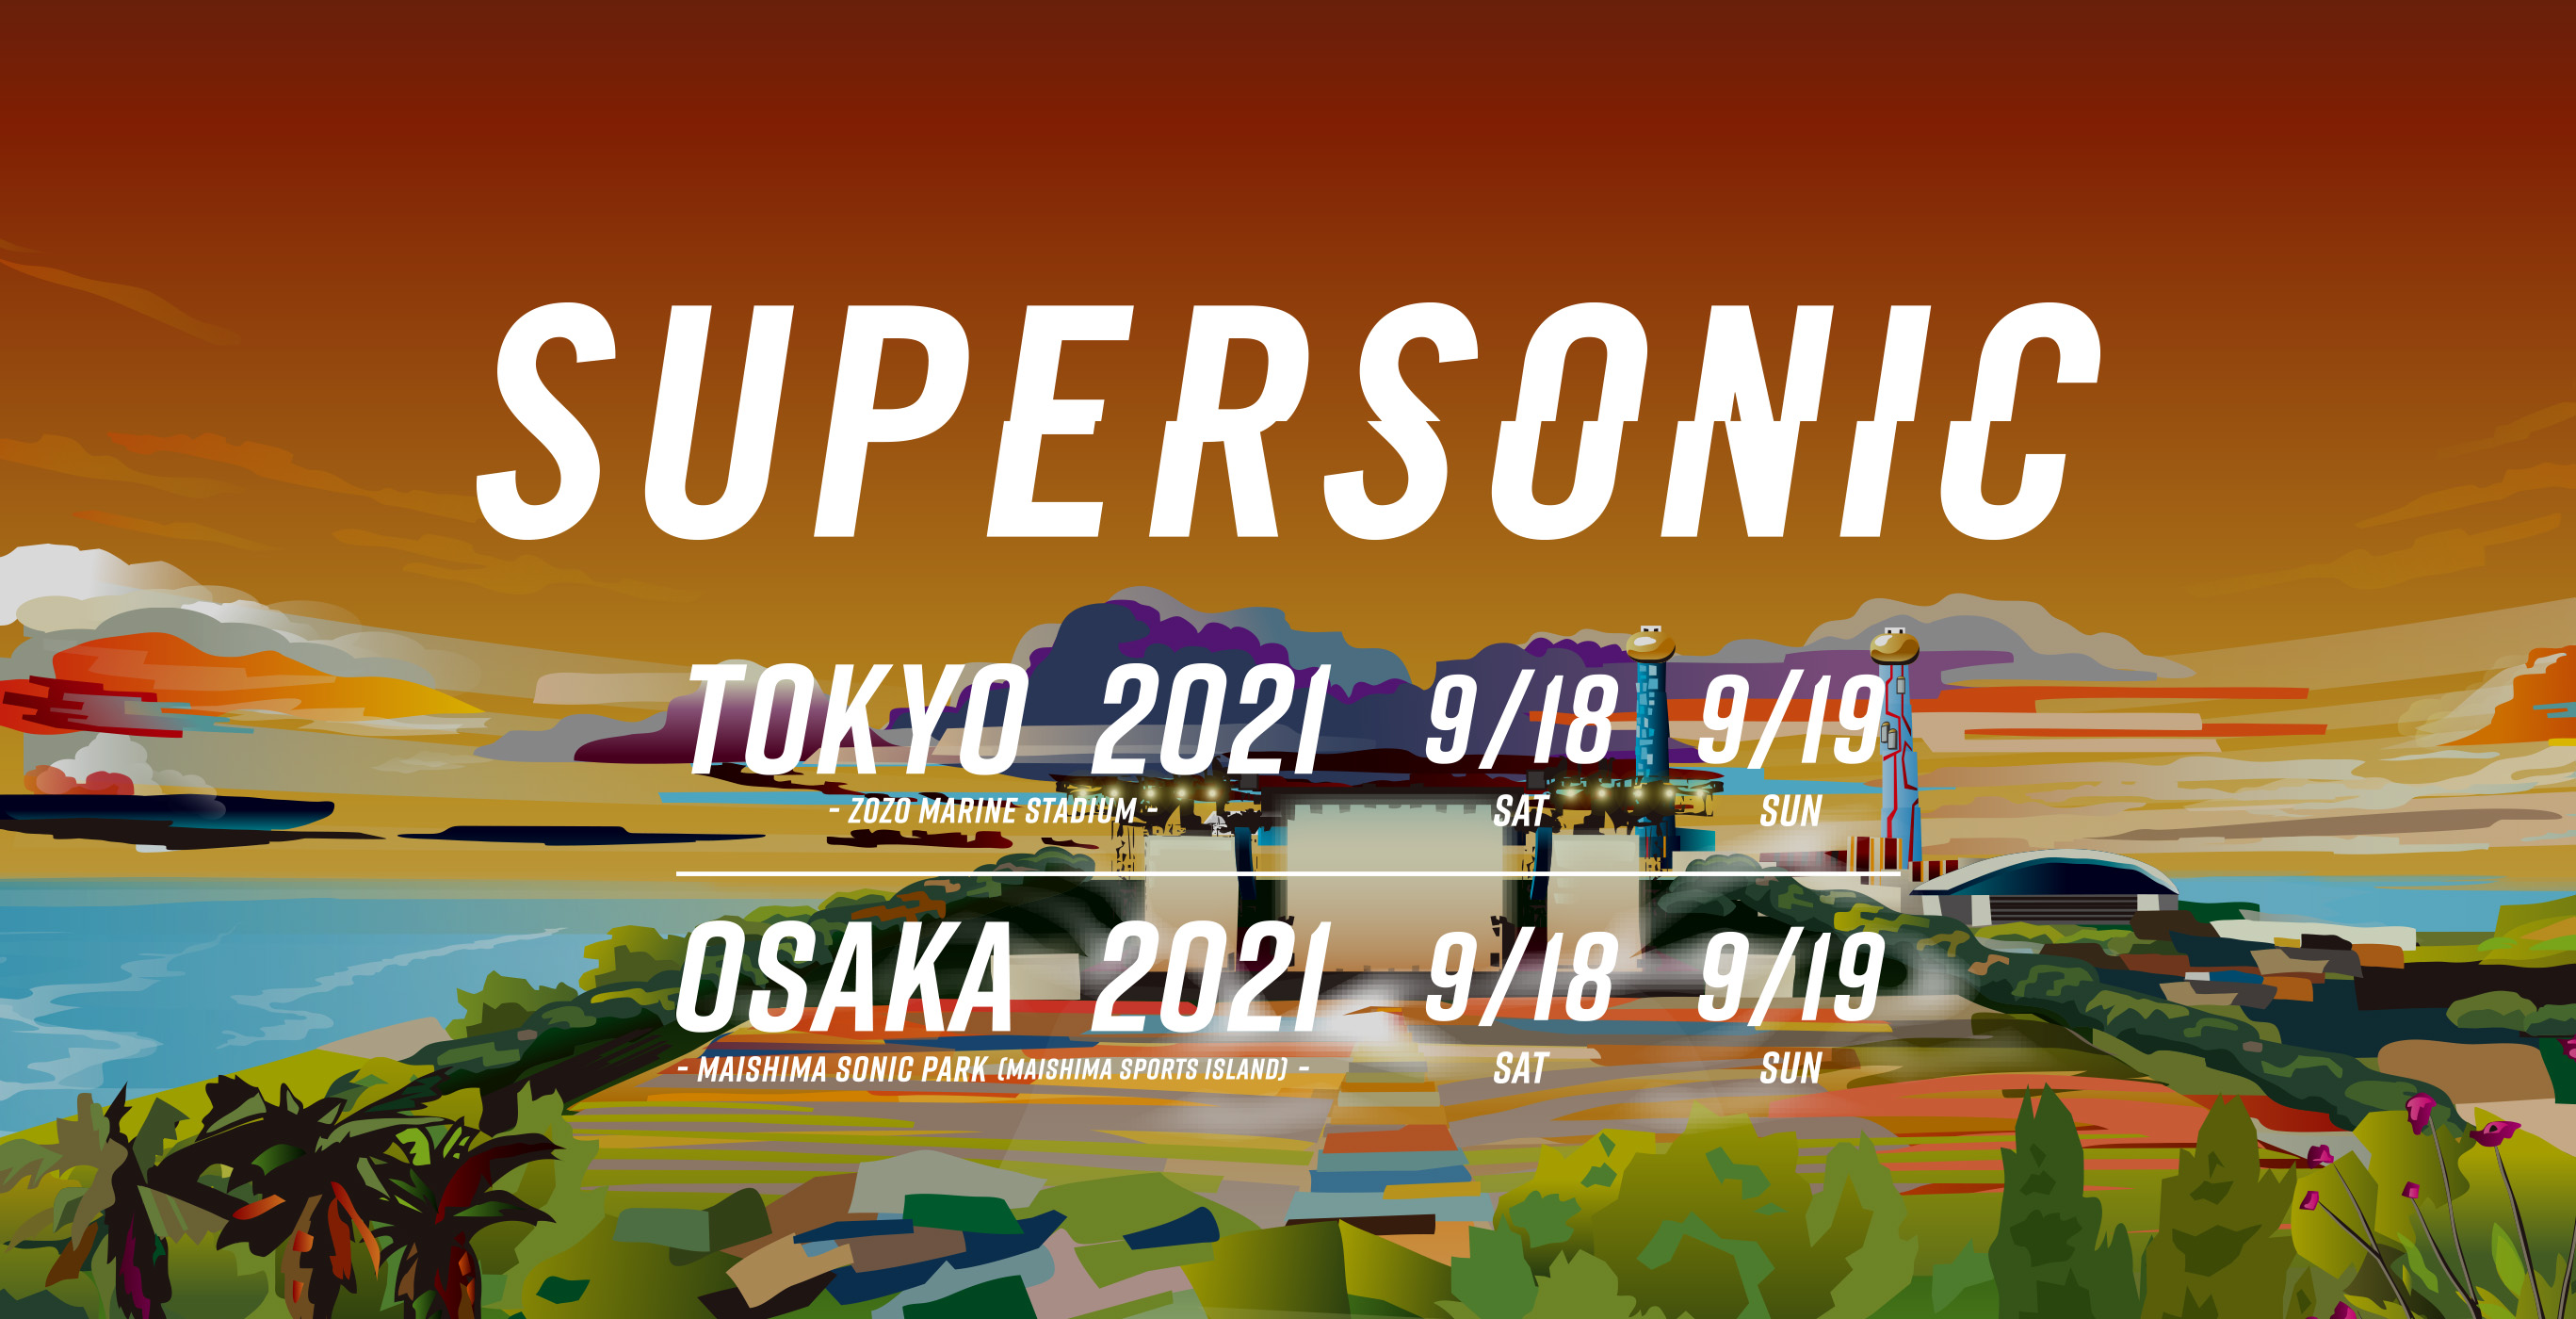 https://supersonic2020.com/static/supersonic2020/official/supersonic_2021_top_osaka.jpg